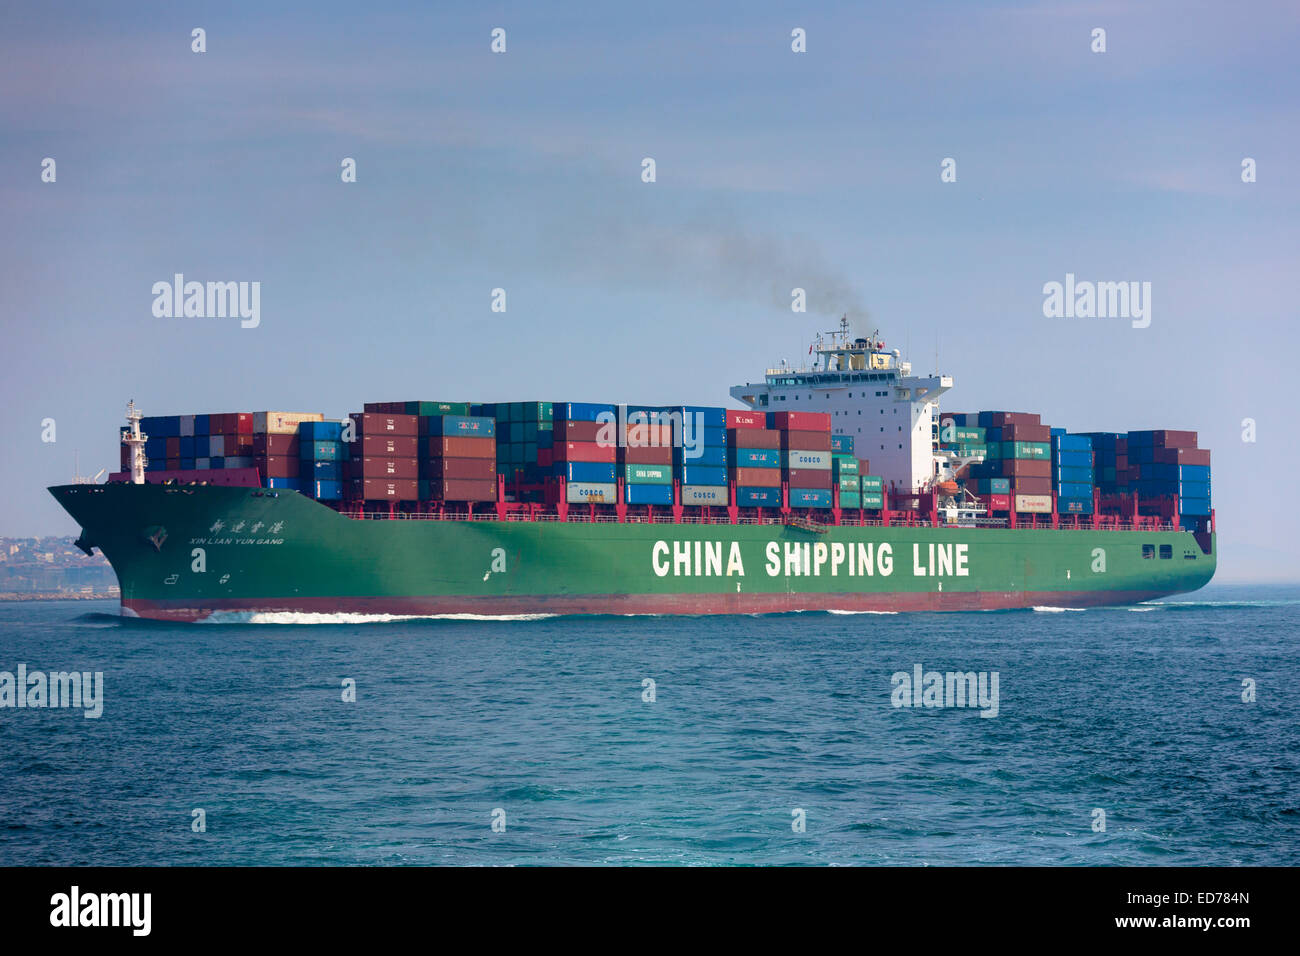 Bulk carrier freight container ship China Shipping Line in River Bosphorus and Sea of Marmara, Istanbul, Republic - Stock Image